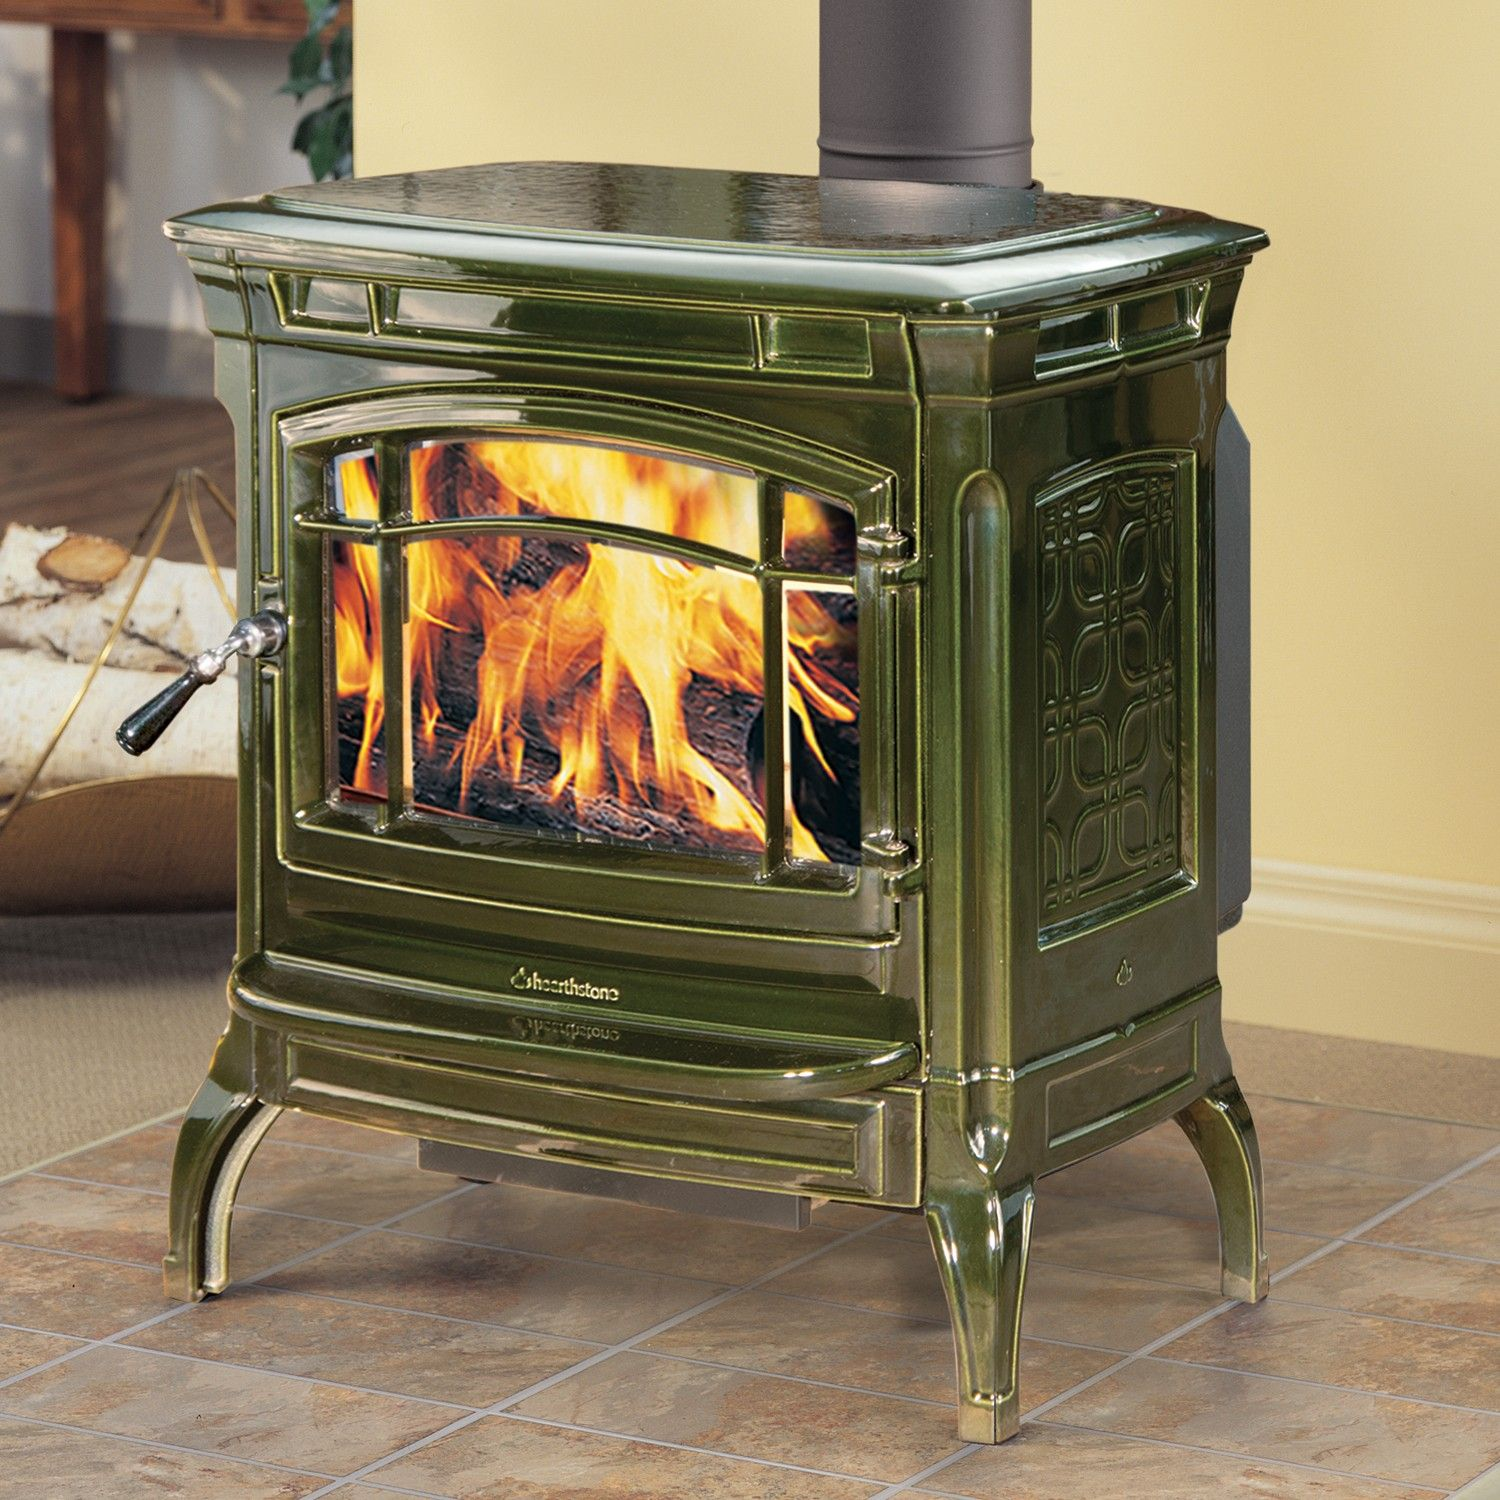 shelburne 8371 wood stove with with basil majolica enamel finish by